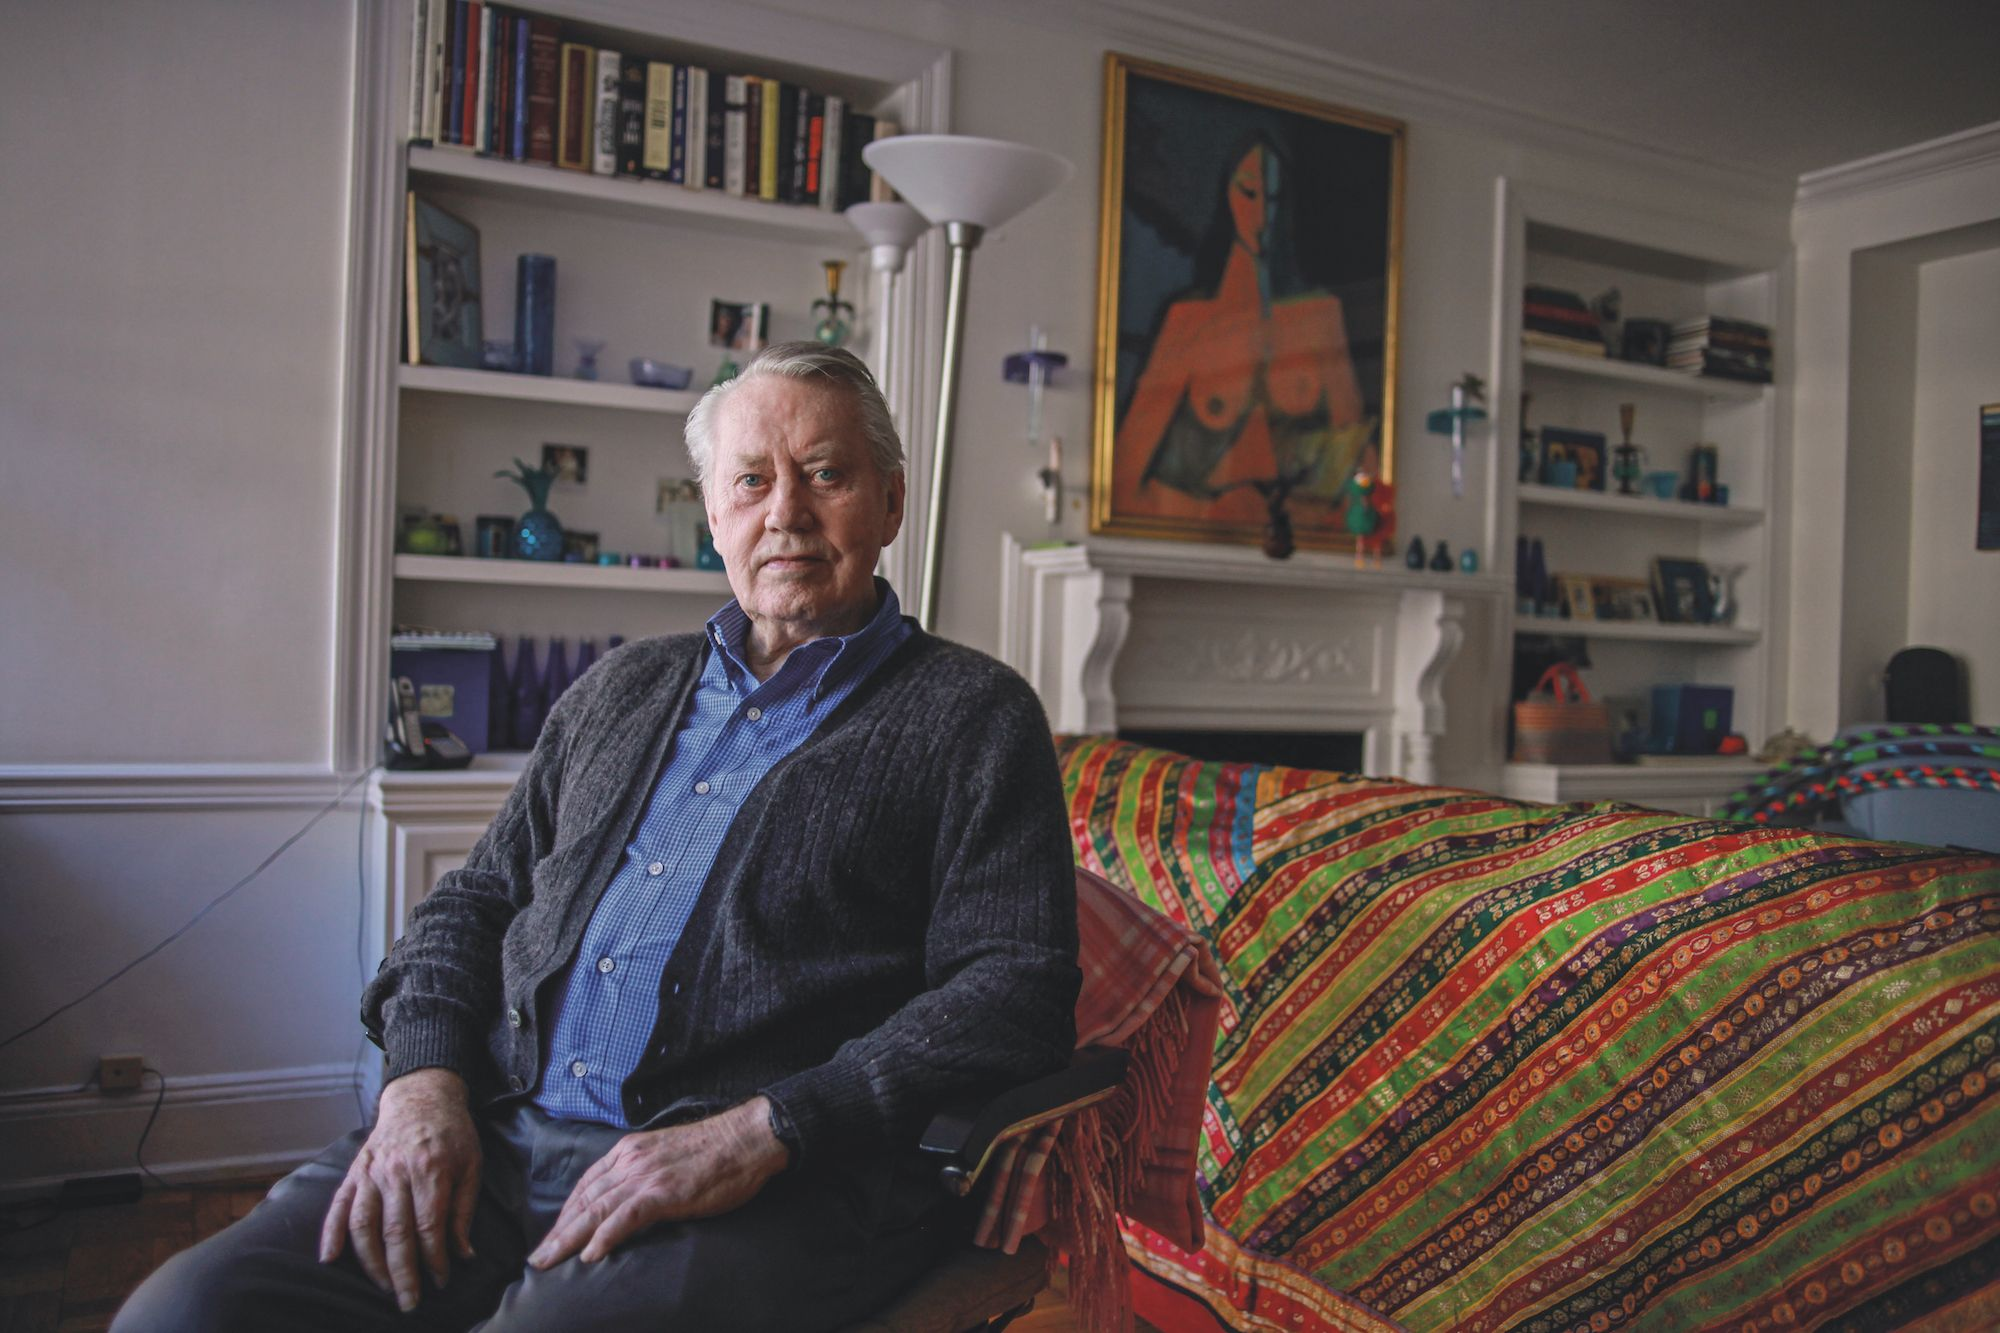 Why DFS Co-founder Chuck Feeney Gave Away His Billions